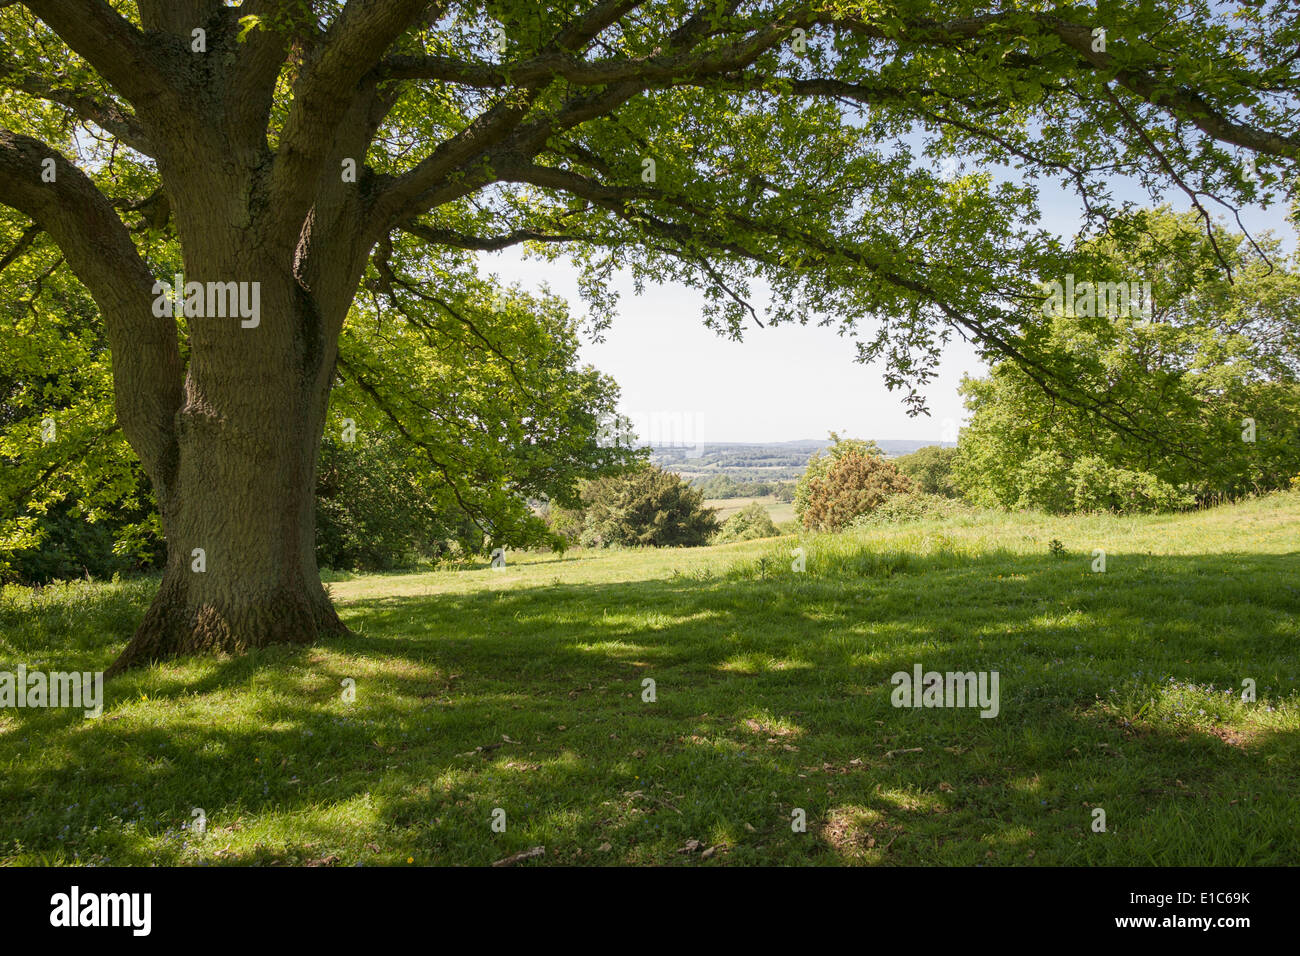 Dappled sunlight under the branches of a large Oak tree at Newlands Corner on the Surrey Hills, Surrey, England, UK - Stock Image